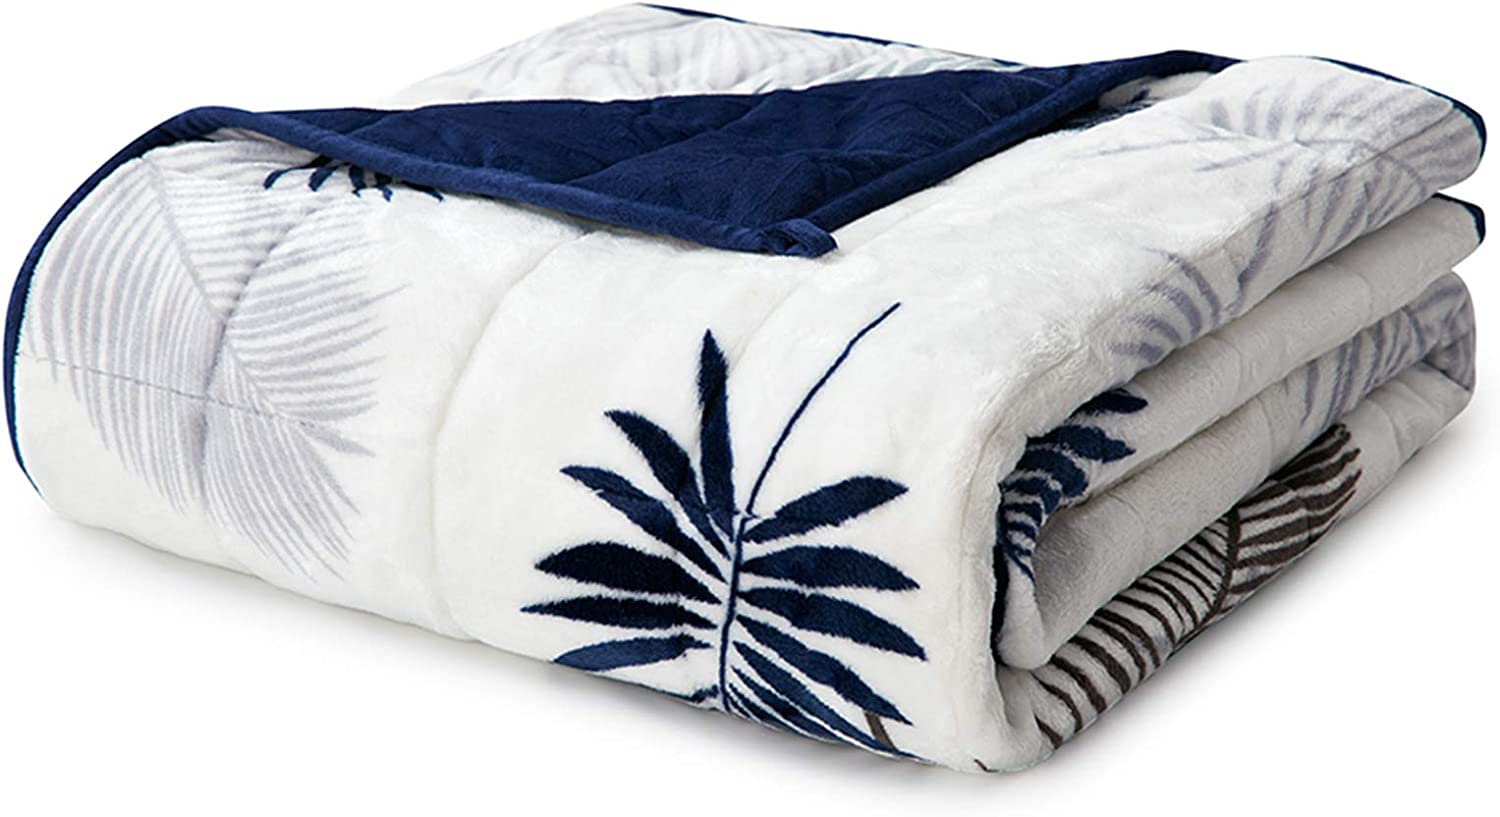 Colorado Springs Mall YnM Flannel Max 57% OFF Weighted Blanket Leaf Fuzzy 80''x87'' Navy 20lbs